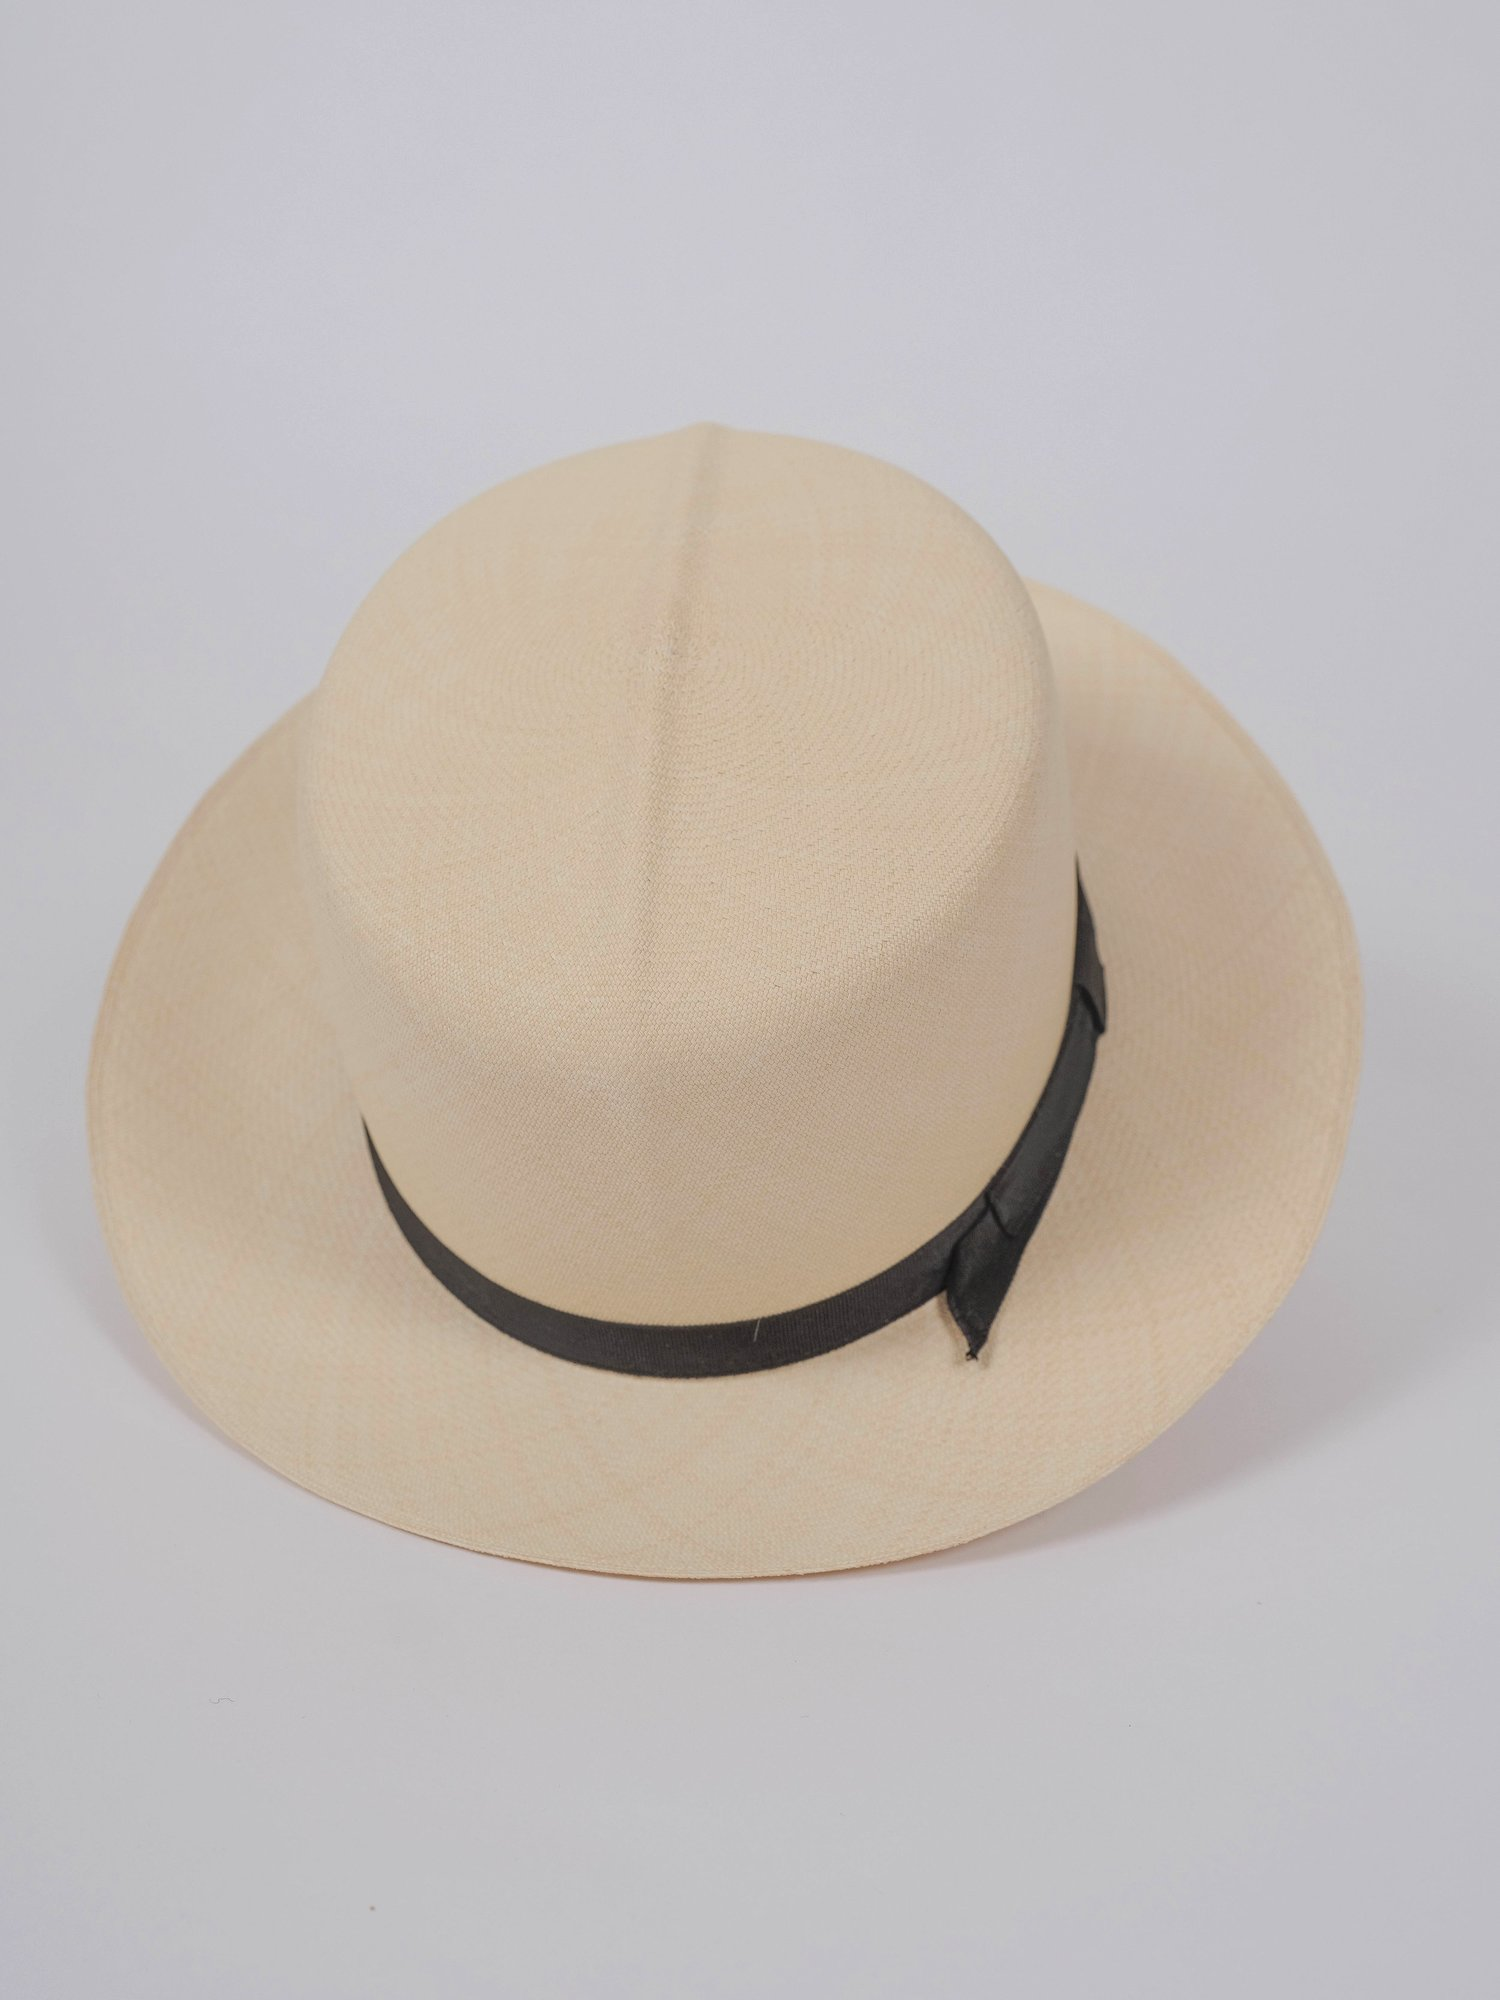 2d5b70e4 Montechristi - Genuine Panama Hat (Made To Order)